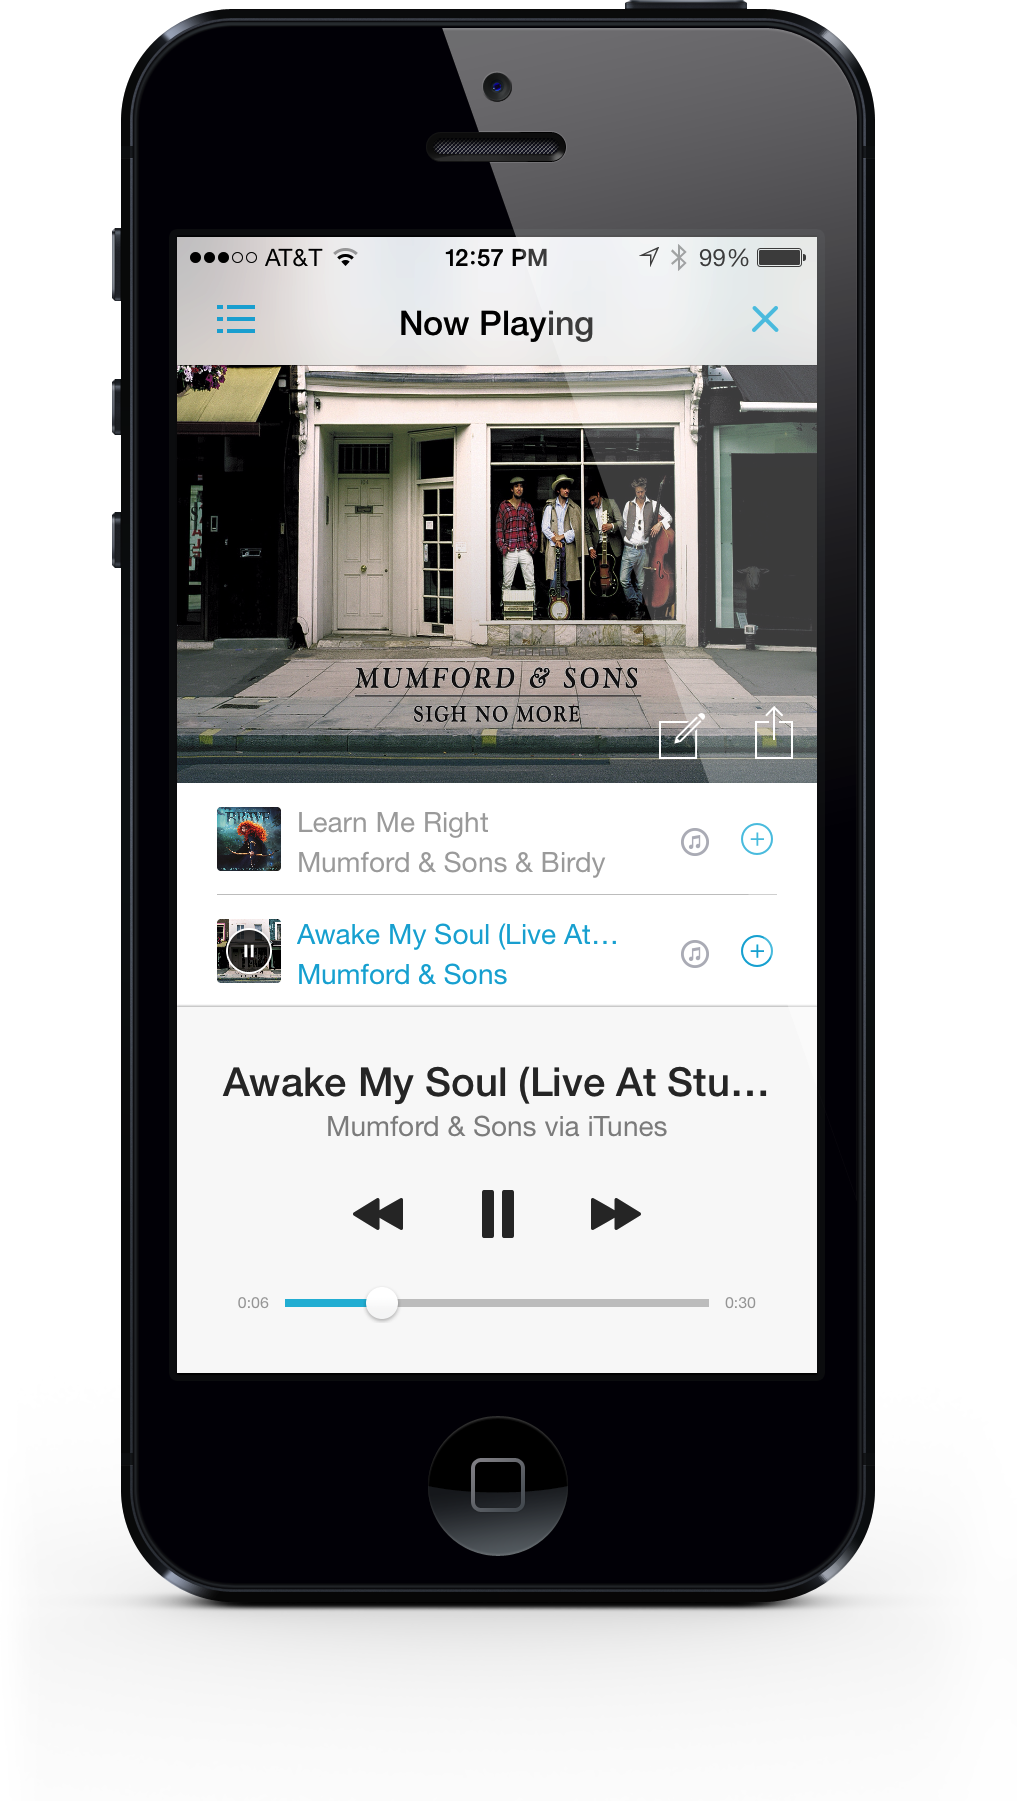 The Popular Discovr Music App Now Supports Apple's iOS 7 And Has A New Design